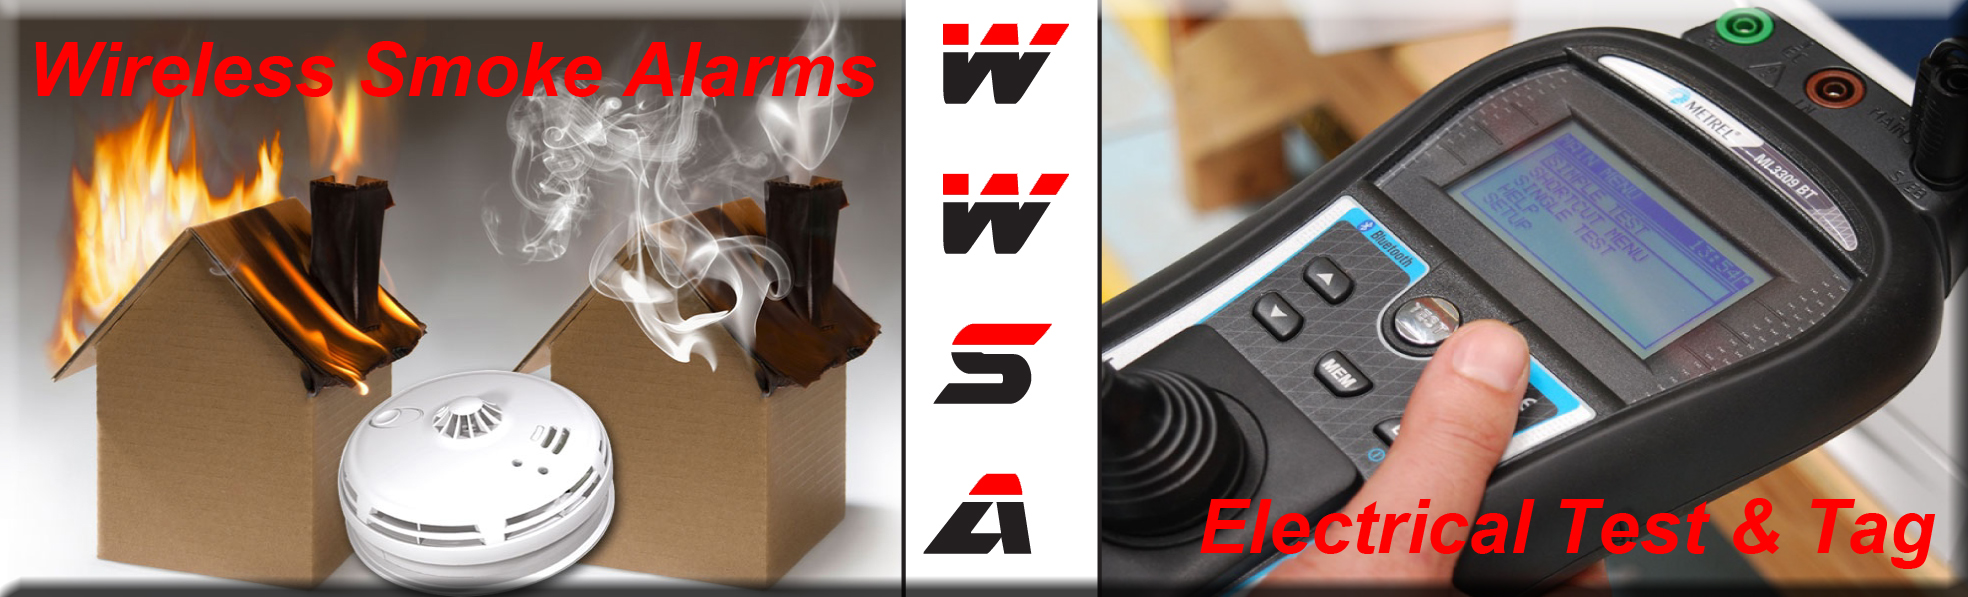 WIRELESS & WIRED SMOKE ALARMS SYSTEMS & TESTING